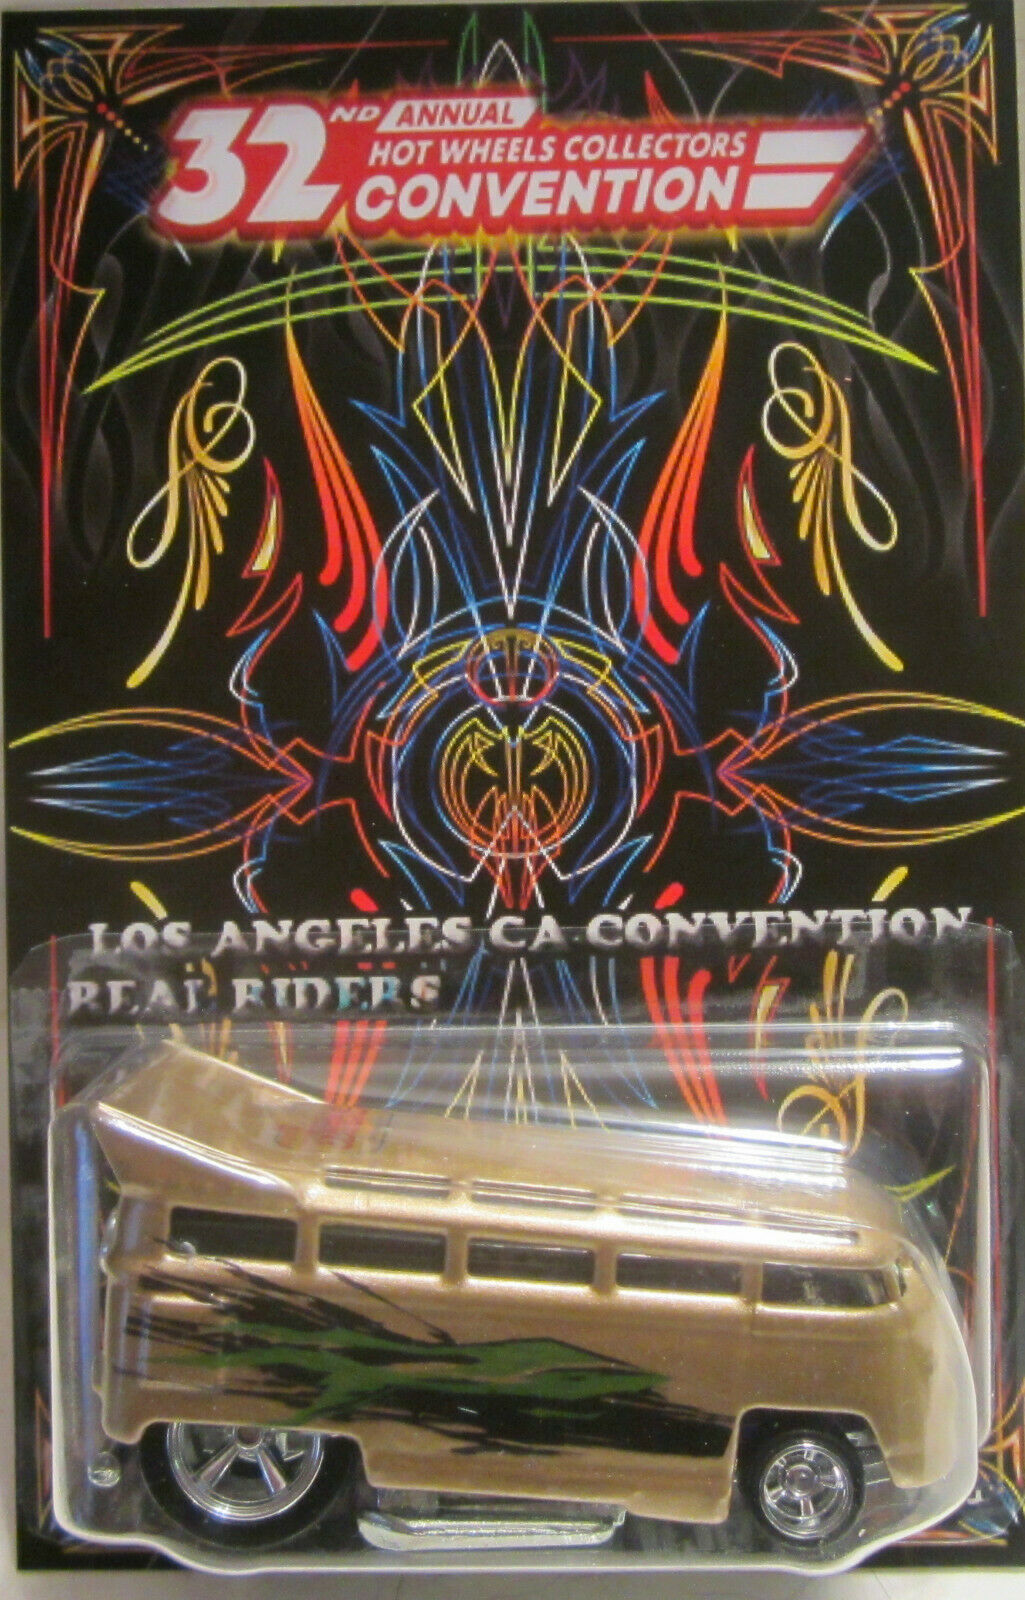 Personnalisé Volkswagen Drag Bus 32nd Hot Wheels Convention Real Riders Limité